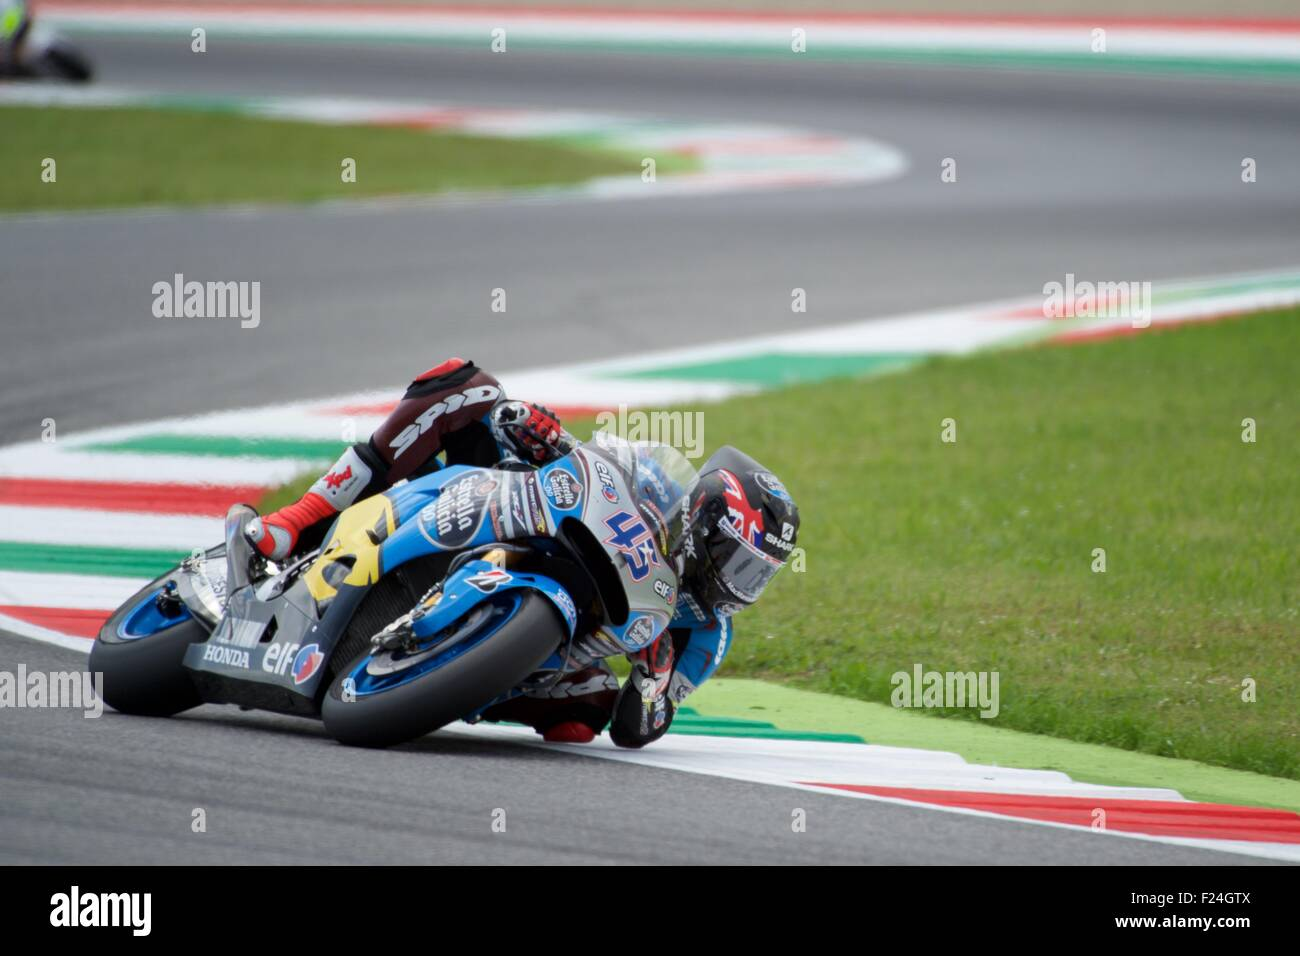 Circuit Italia Motogp : Mugello motogp stock photos mugello motogp stock images alamy